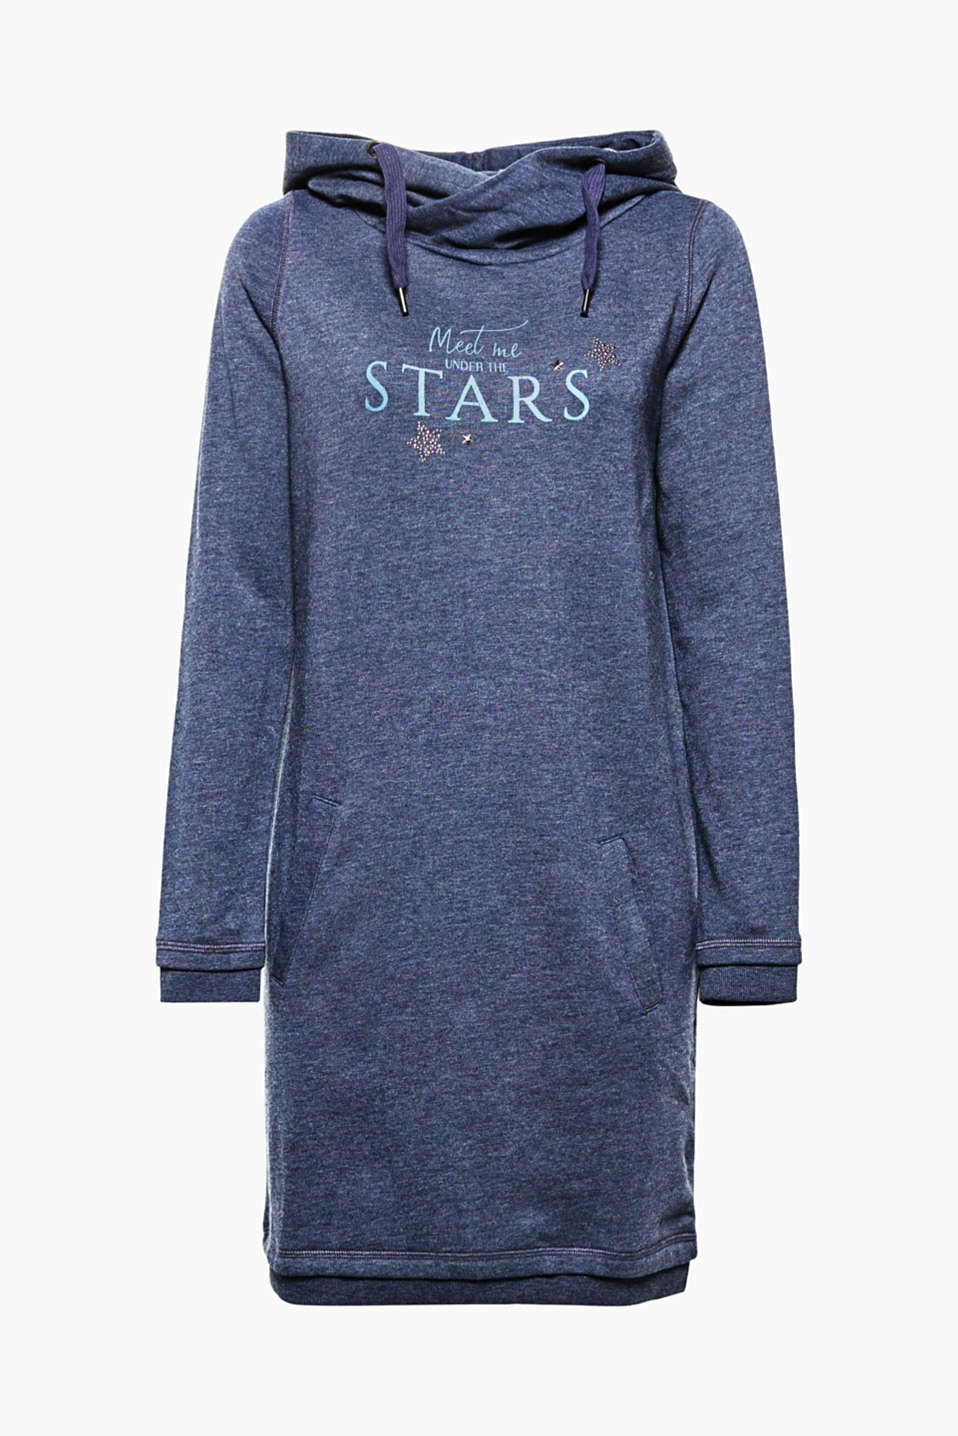 Comfy style for relaxed looks: sweatshirt dress with a stud slogan print and a wrap-over hood.